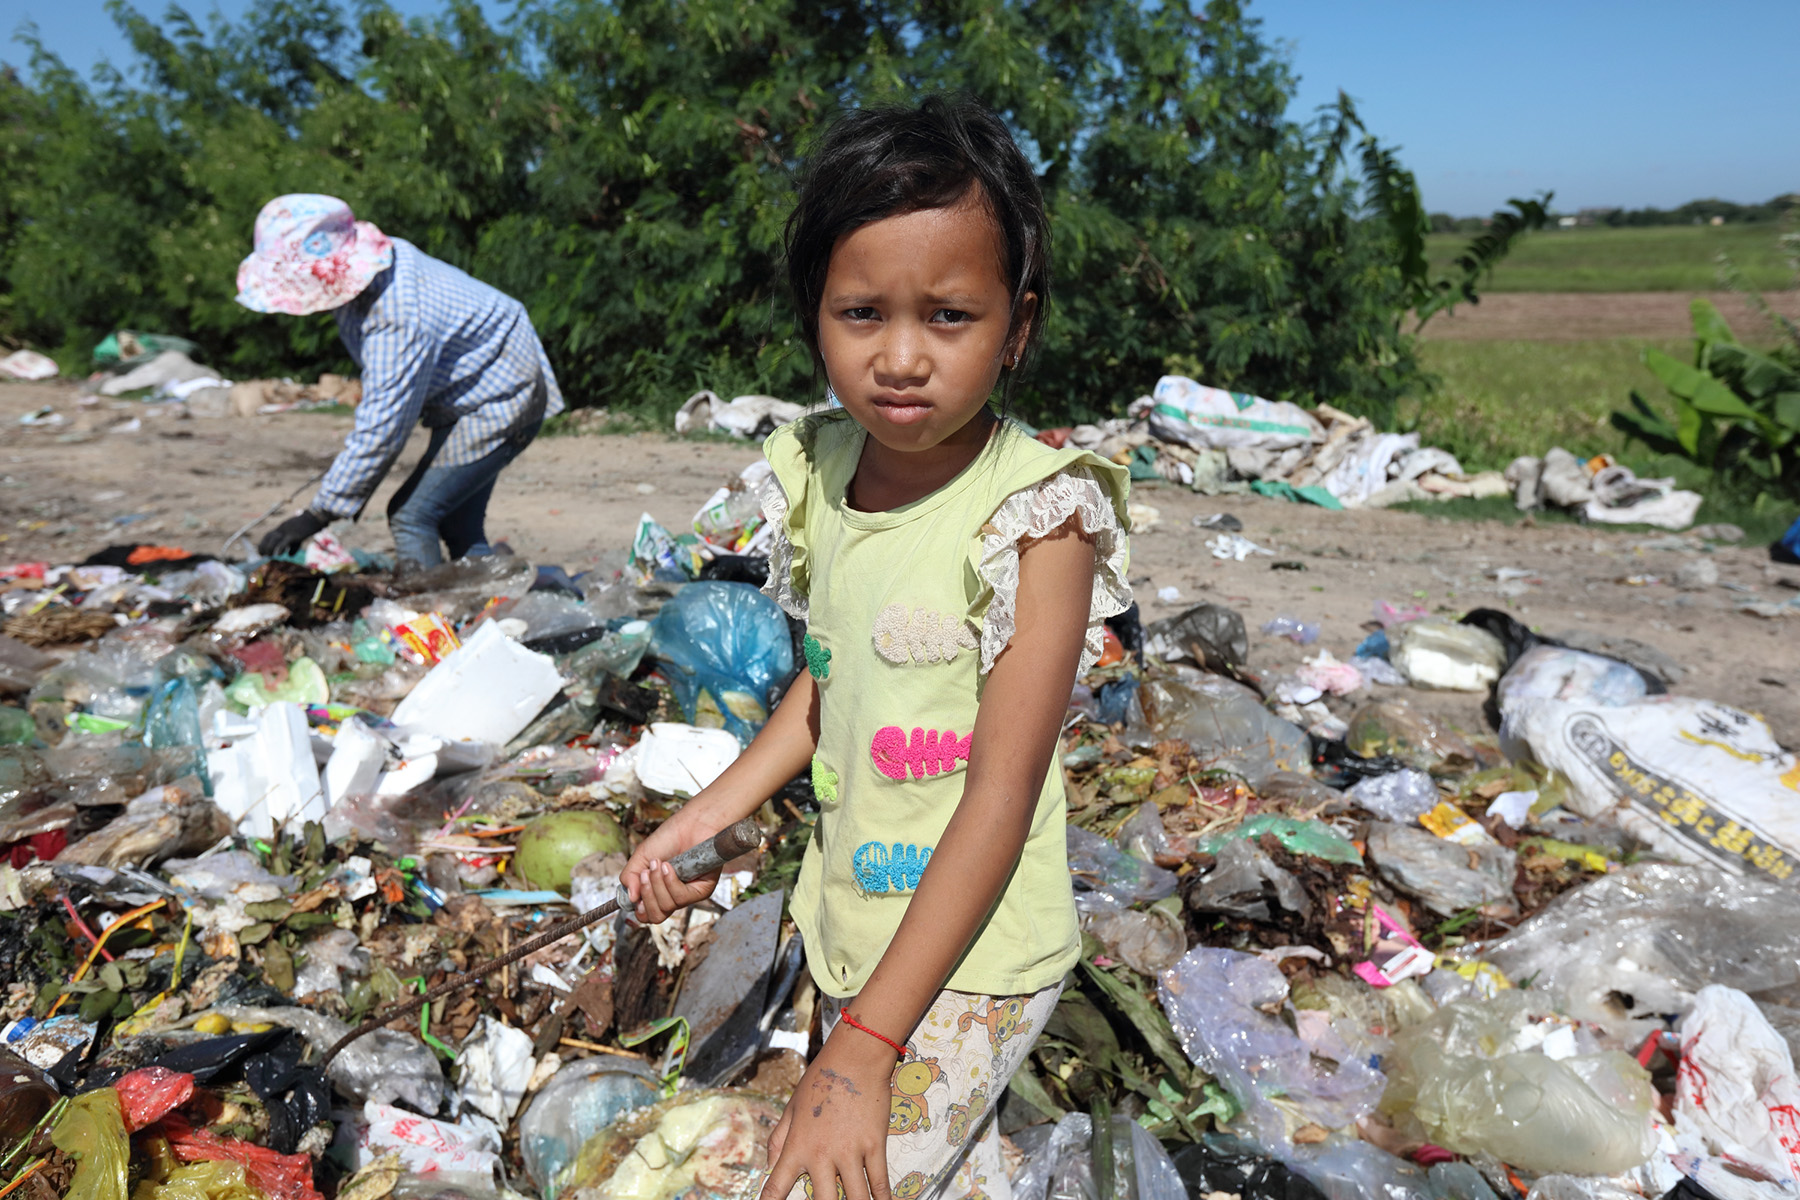 Sok Phear, 11 years old, scavenges through garbage at the rubbish tip in Takhmao looking for plastic to sell for 5c/ kilo.